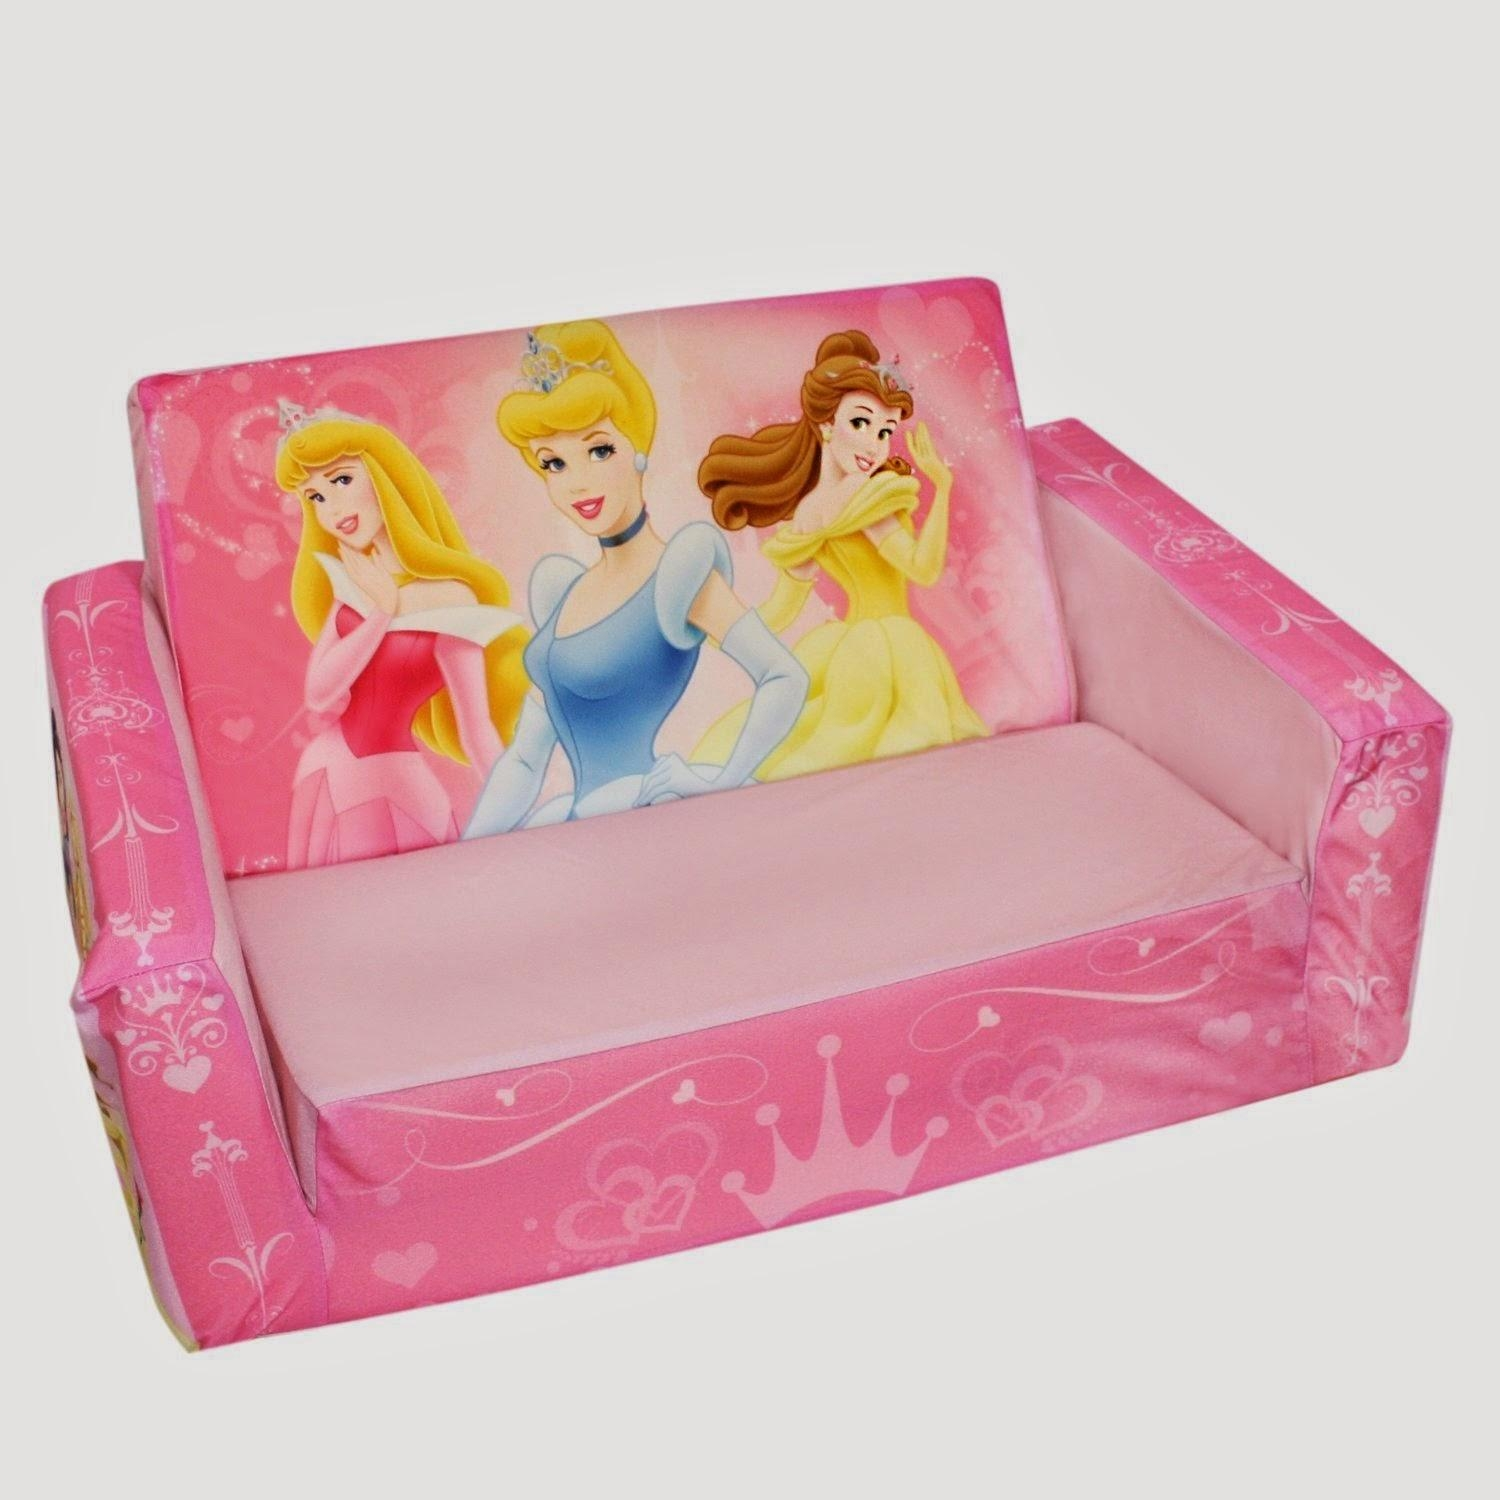 Fold Out Couch Pertaining To Disney Sofa Chairs (Image 9 of 20)